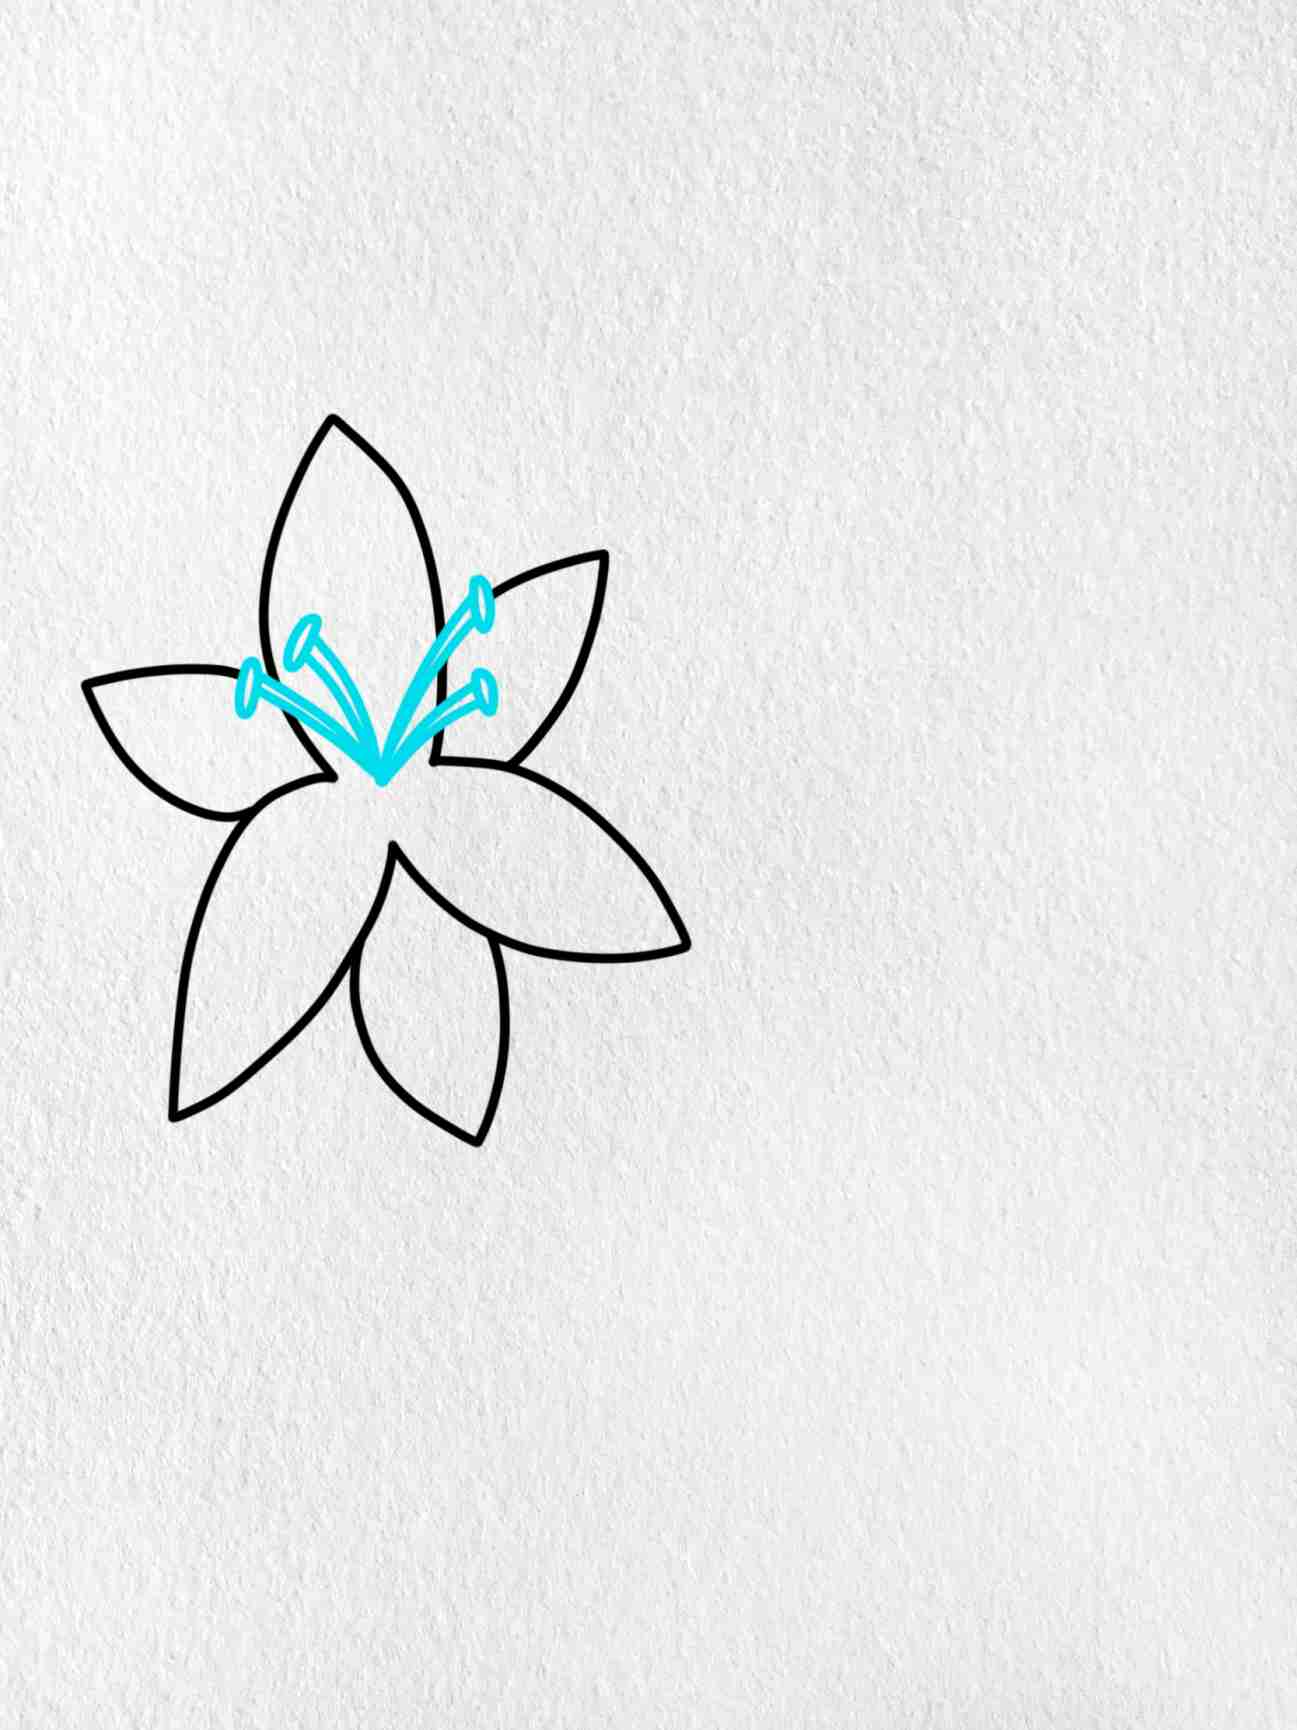 How To Draw A Lily: Step 2